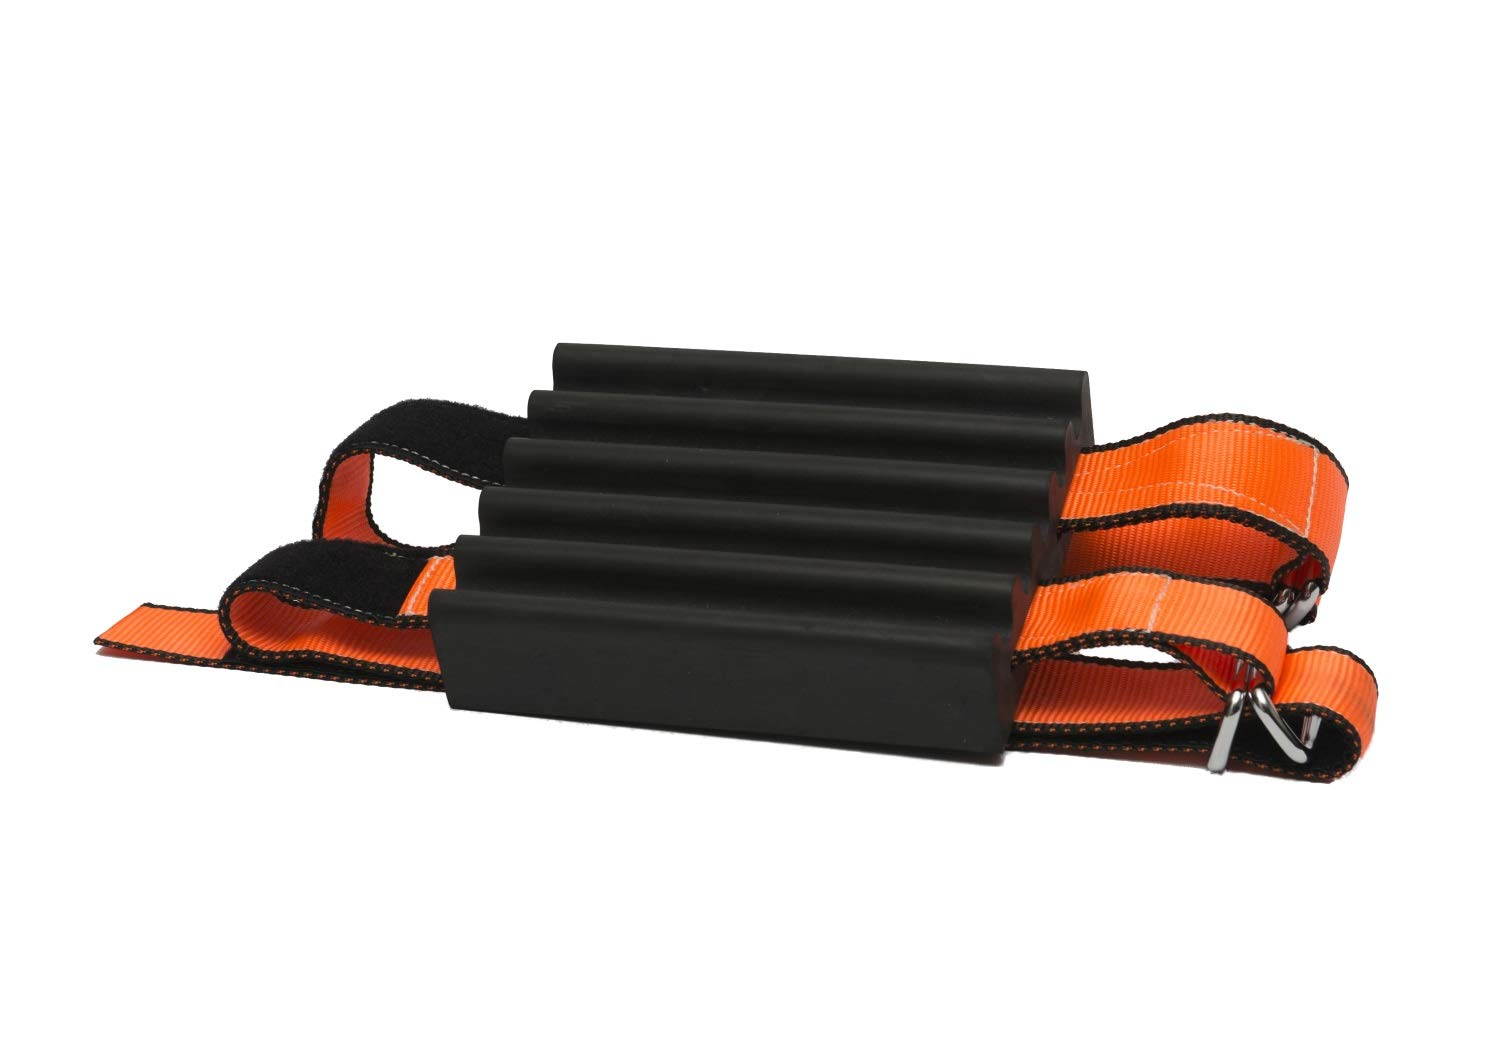 Easy Install Blocks Strap To Your Vehicle Tires Set of 4 Trac-Grabber Snow Mud and Sand Tire Traction Device for Trucks and SUVs A Chain // Snow Tire Alternative That Helps You Get Unstuck